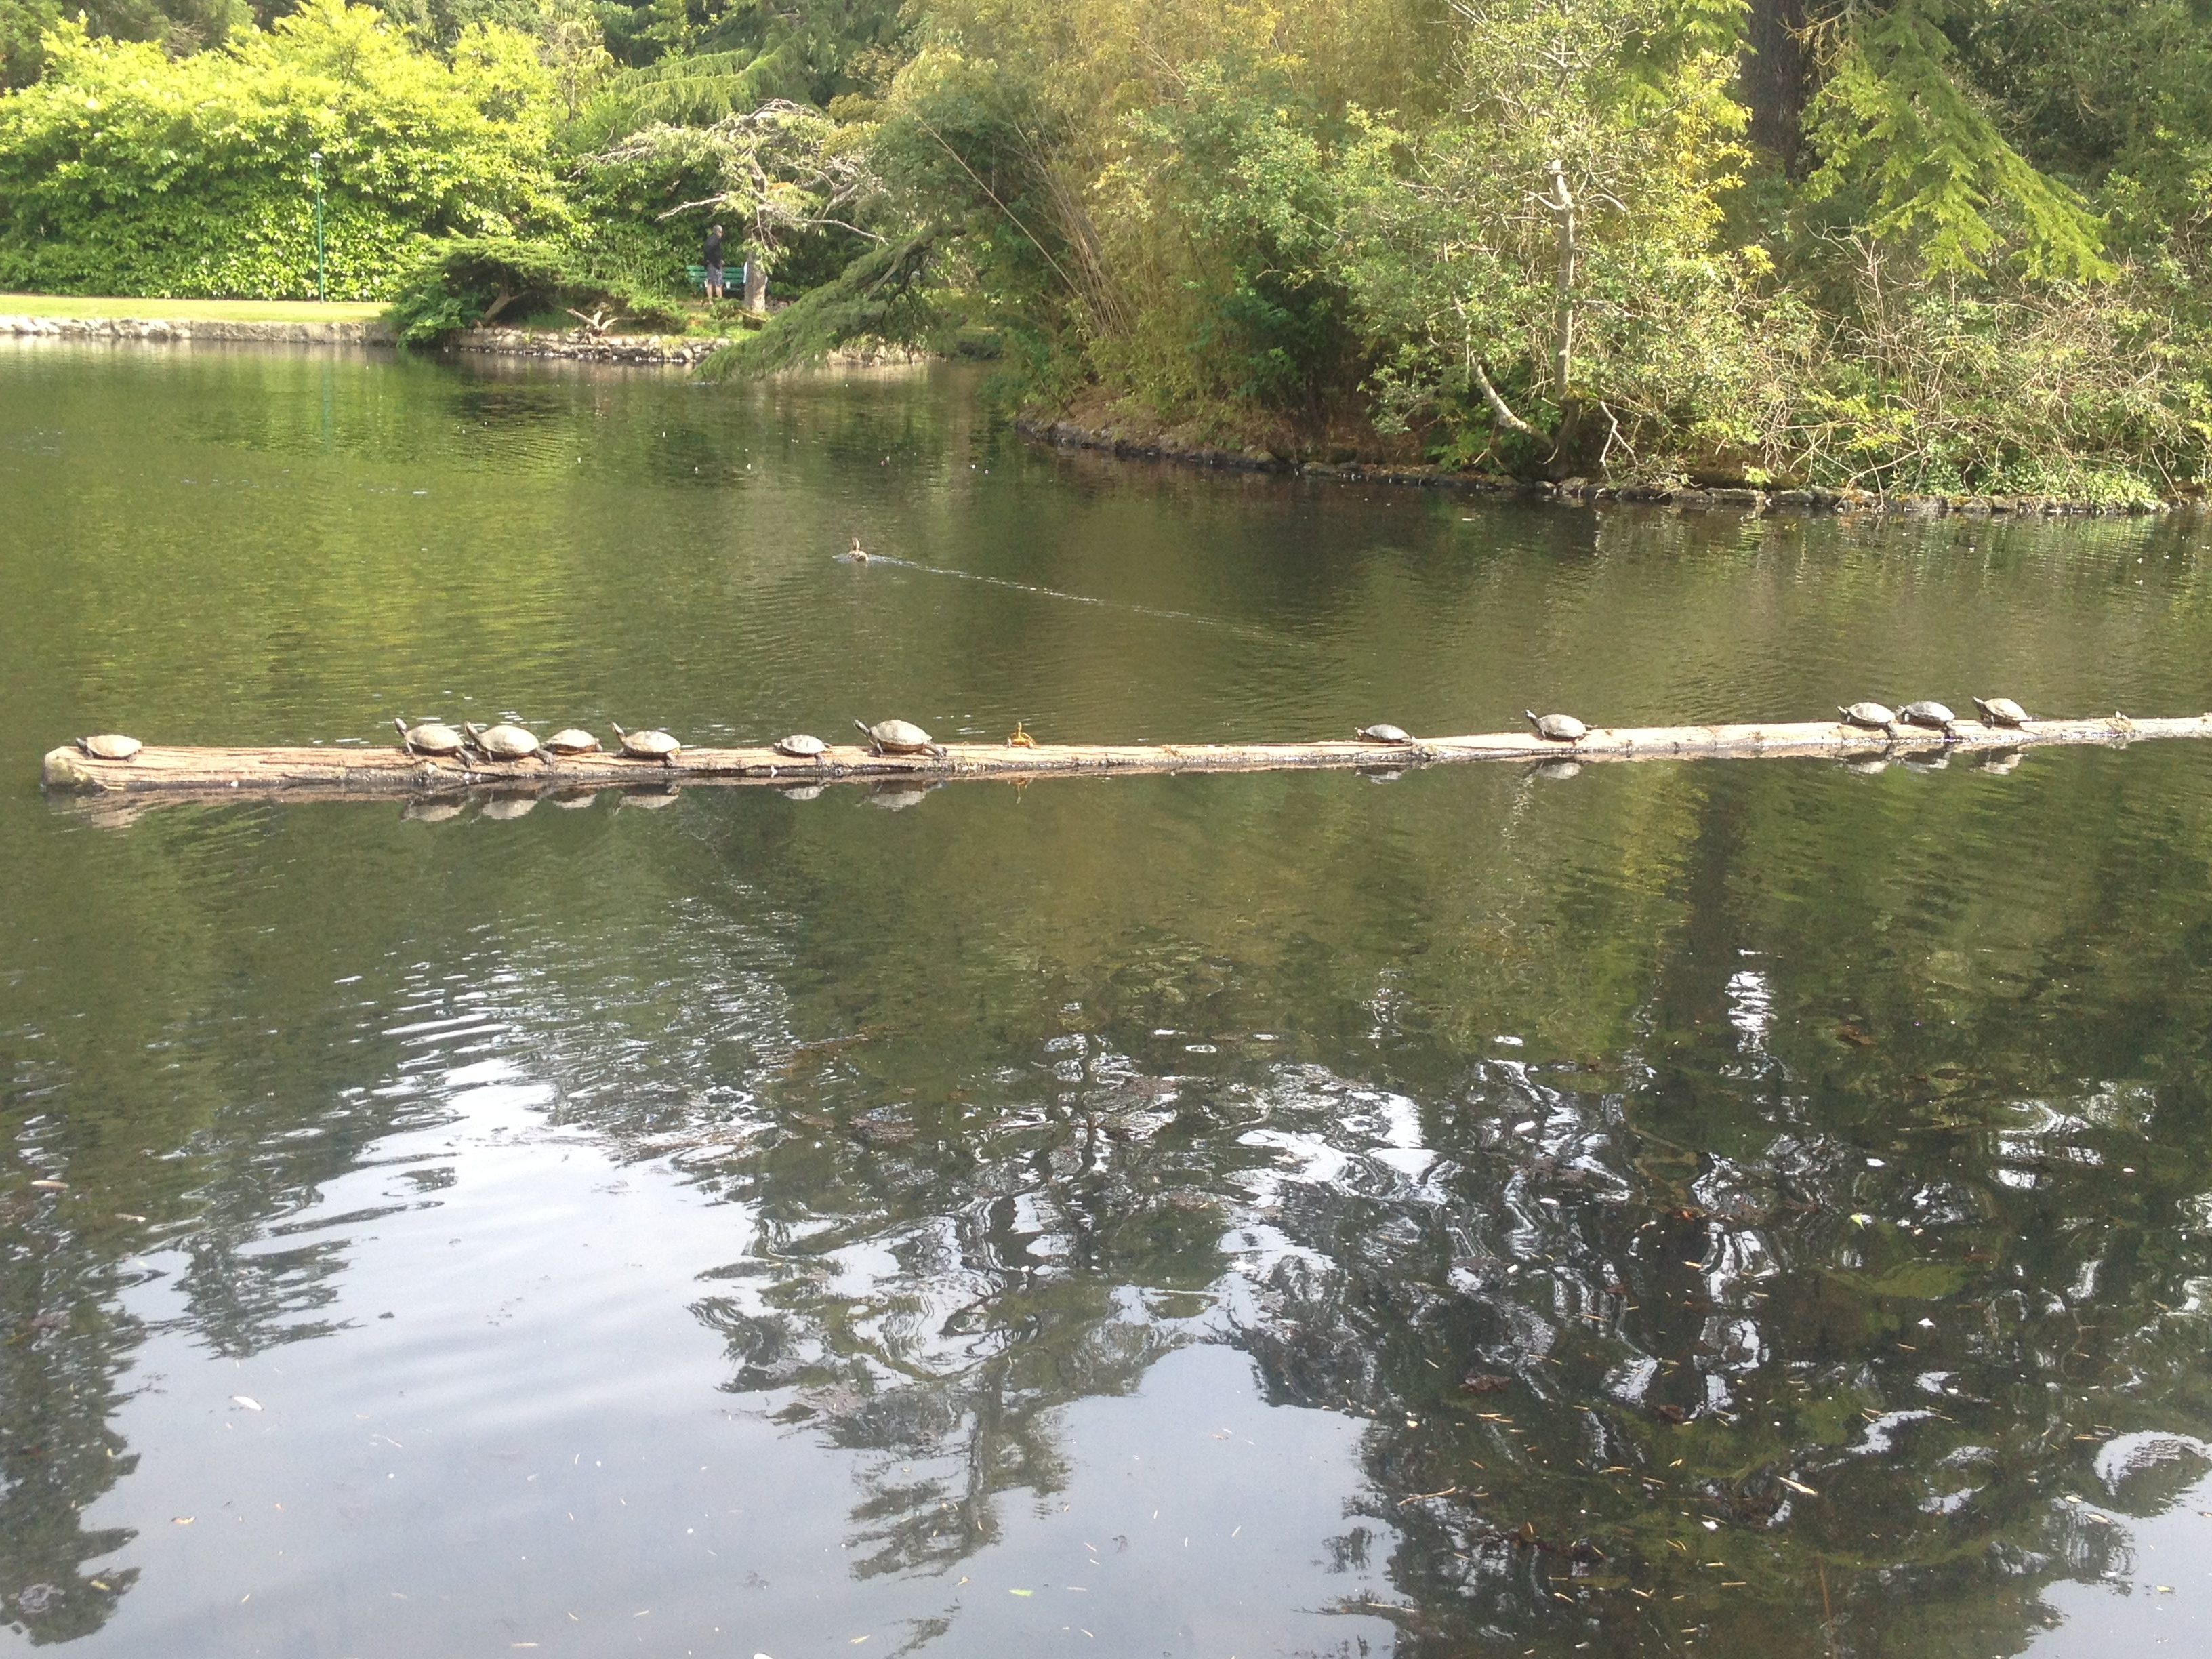 Turtles on a log at Beacon Hill Park